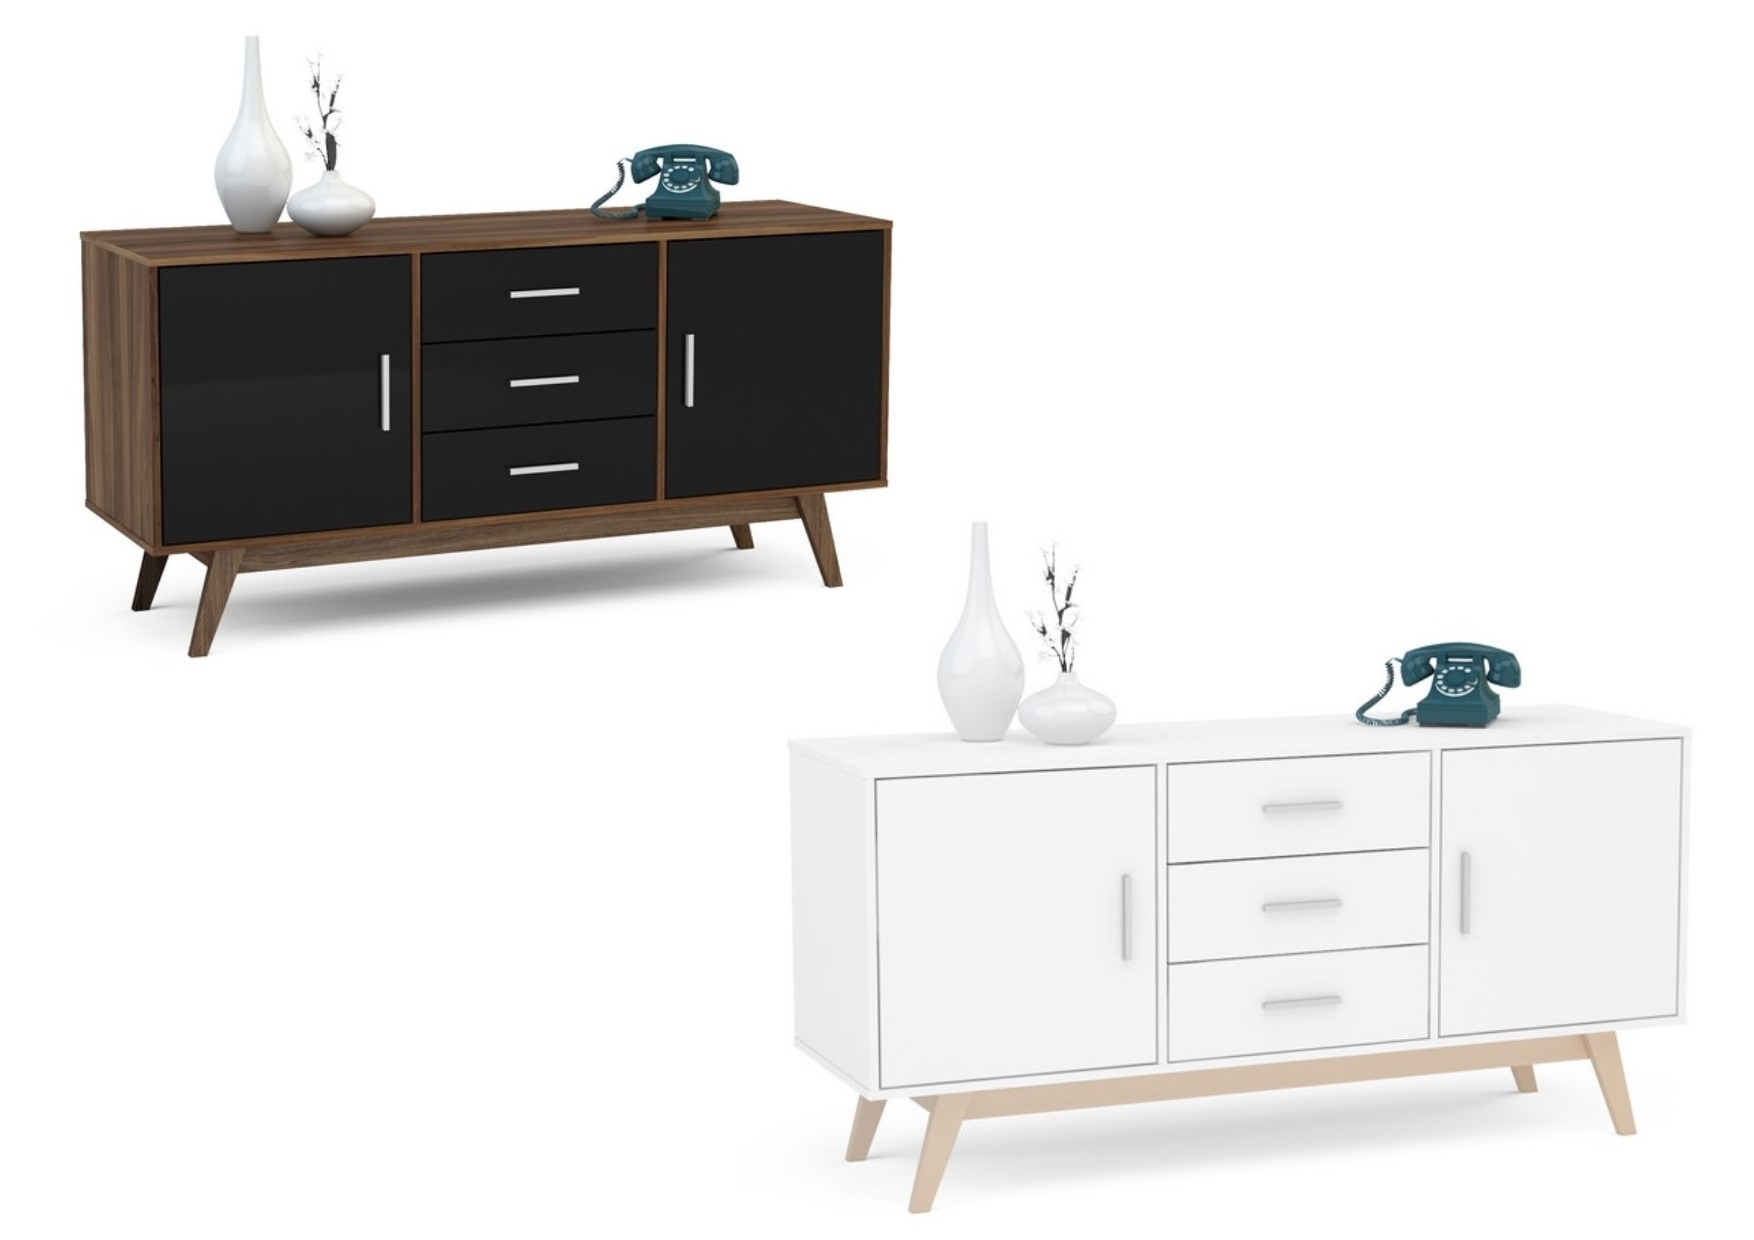 Birlea Shard Gloss Sideboards - 2 Door 3 Drawer - Wooden Legs intended for 2-Drawer Sideboards (Image 4 of 30)